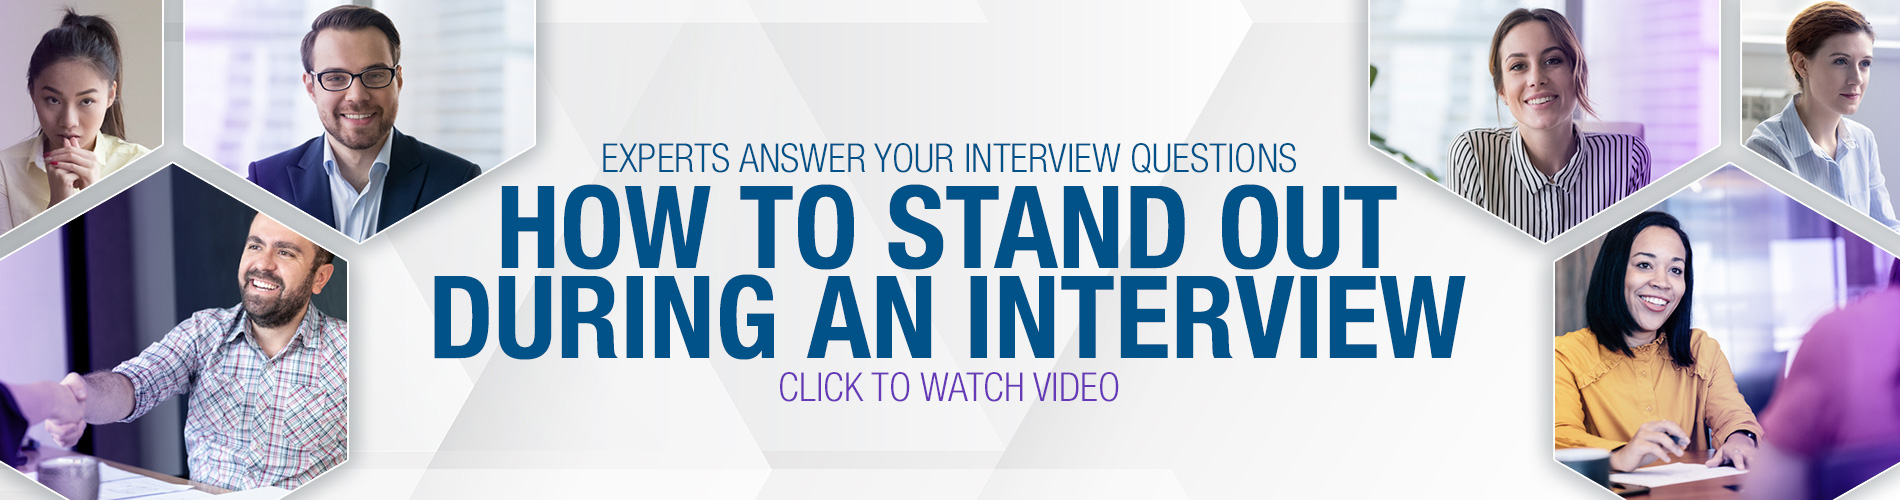 Express Jobs How To Stand Out During An Interview